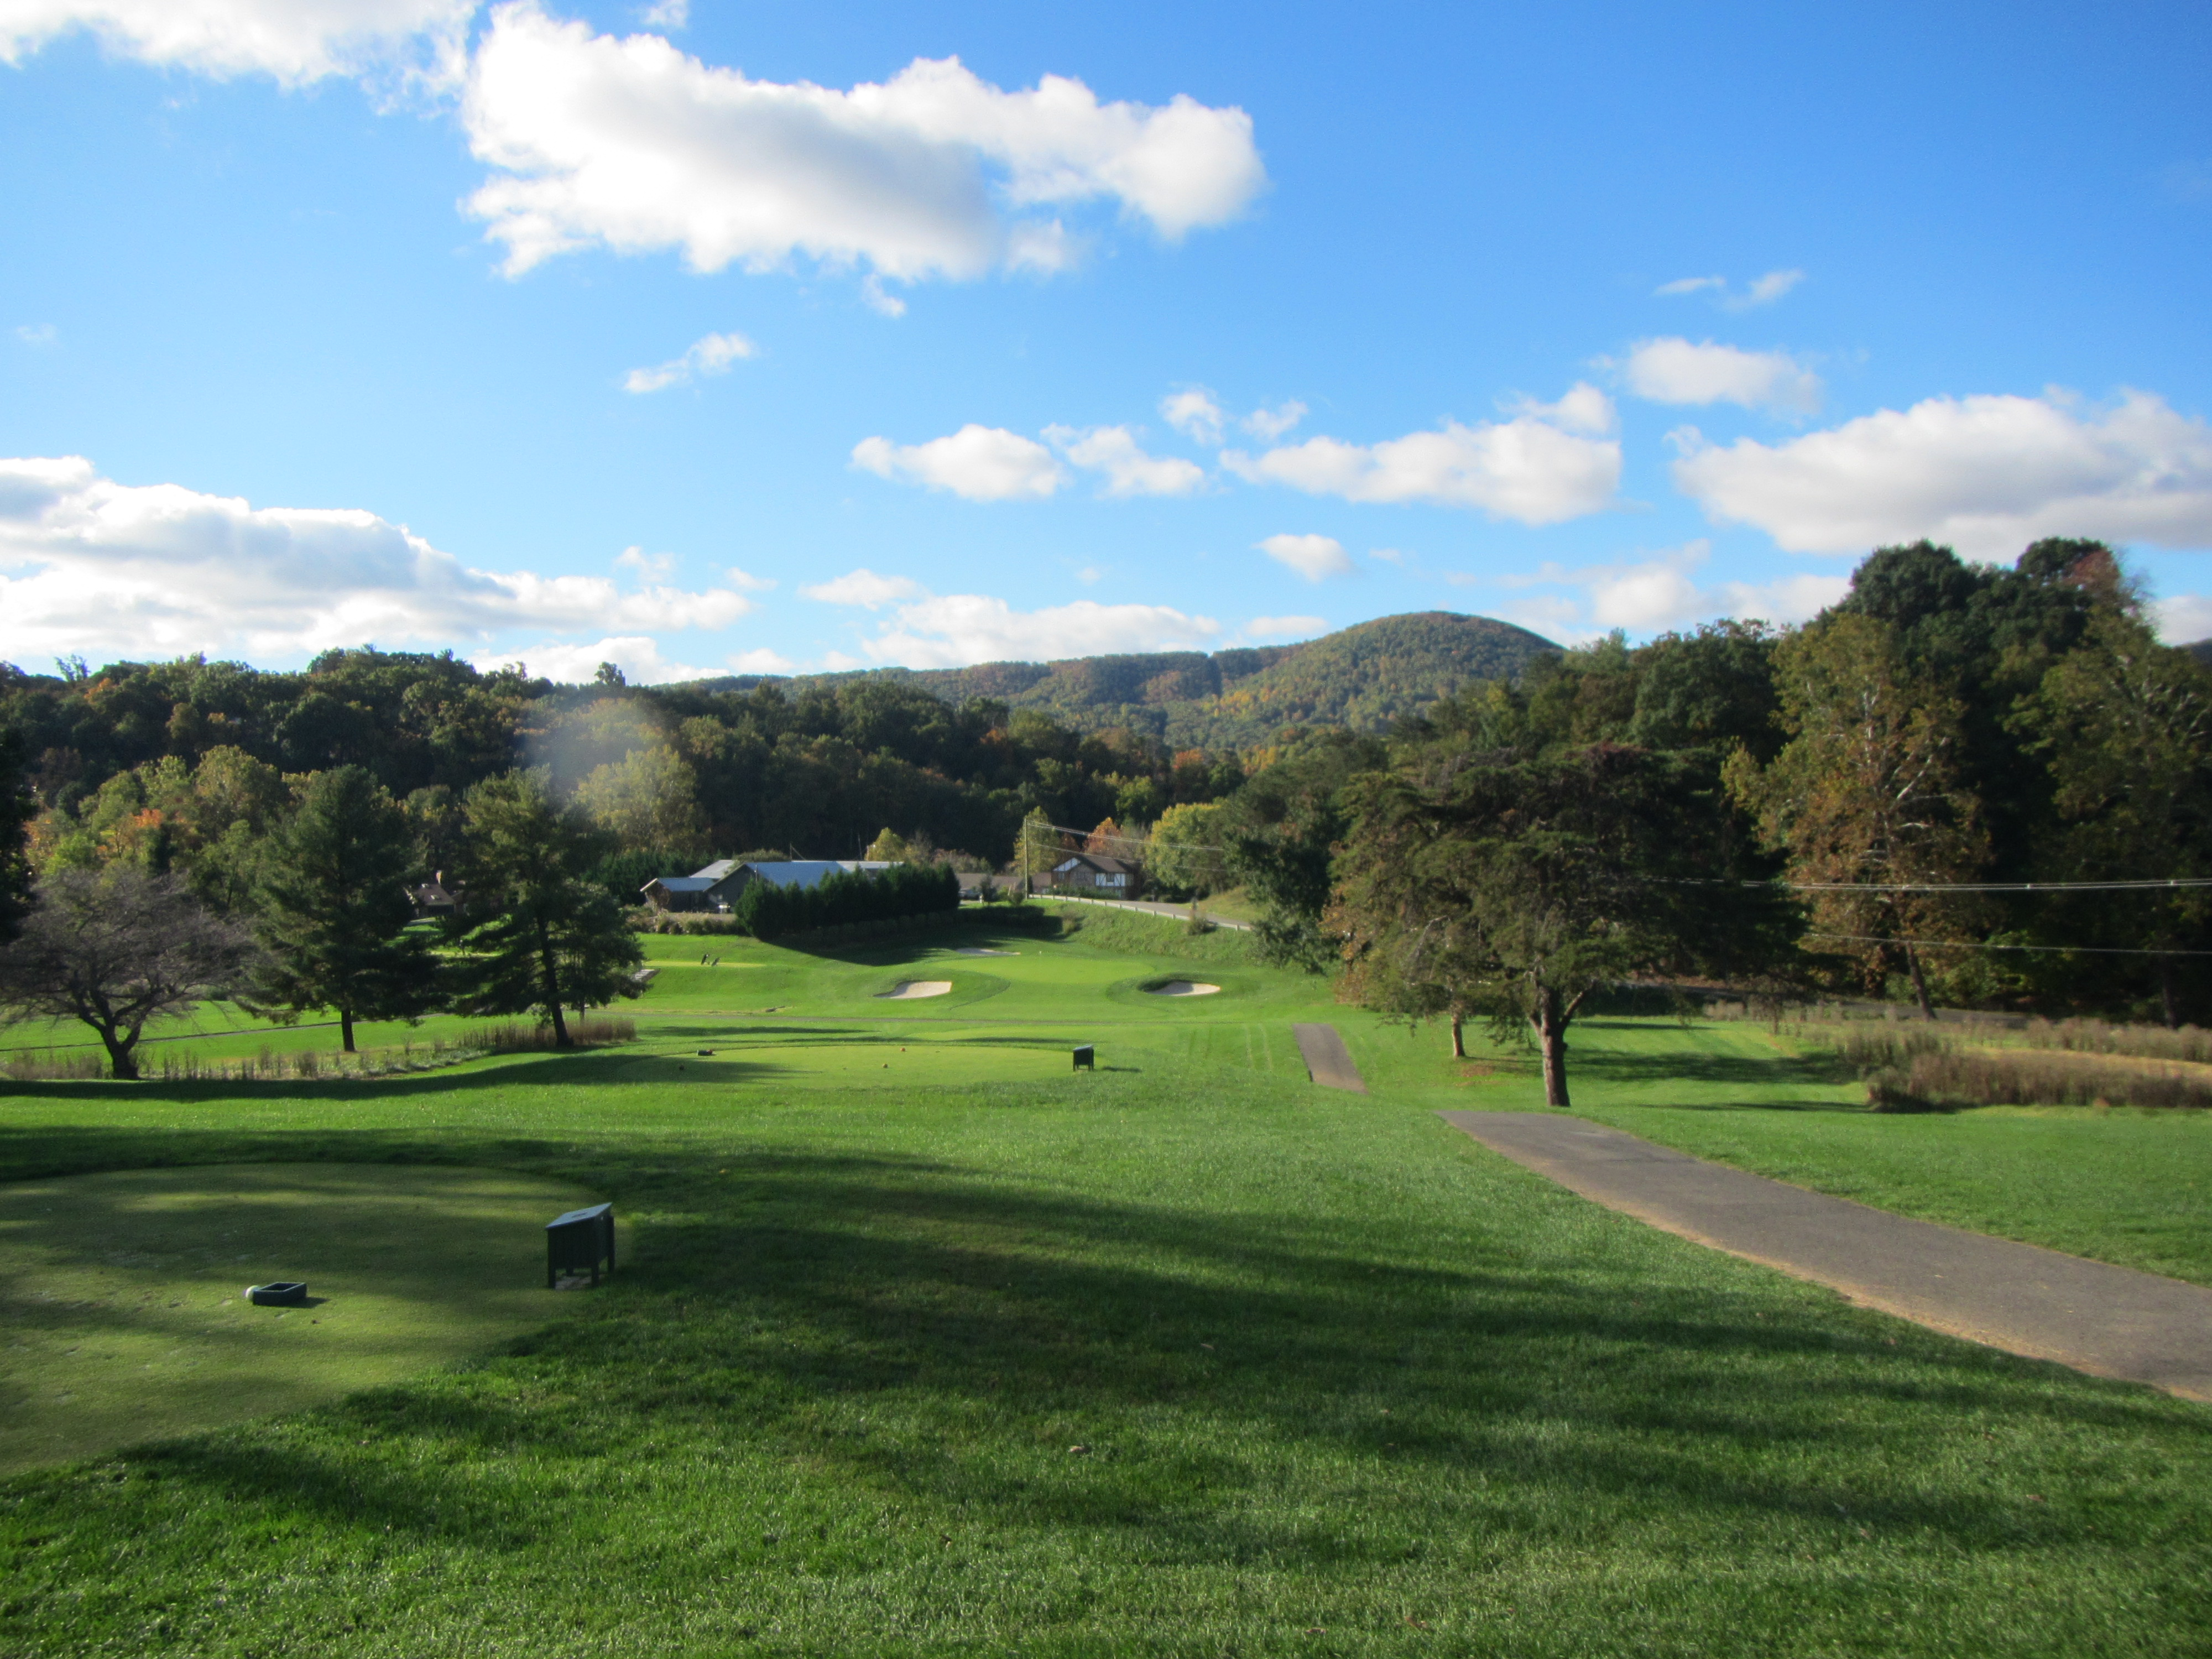 2014 Forum Outing – Warm-up Course #2: Hidden Valley